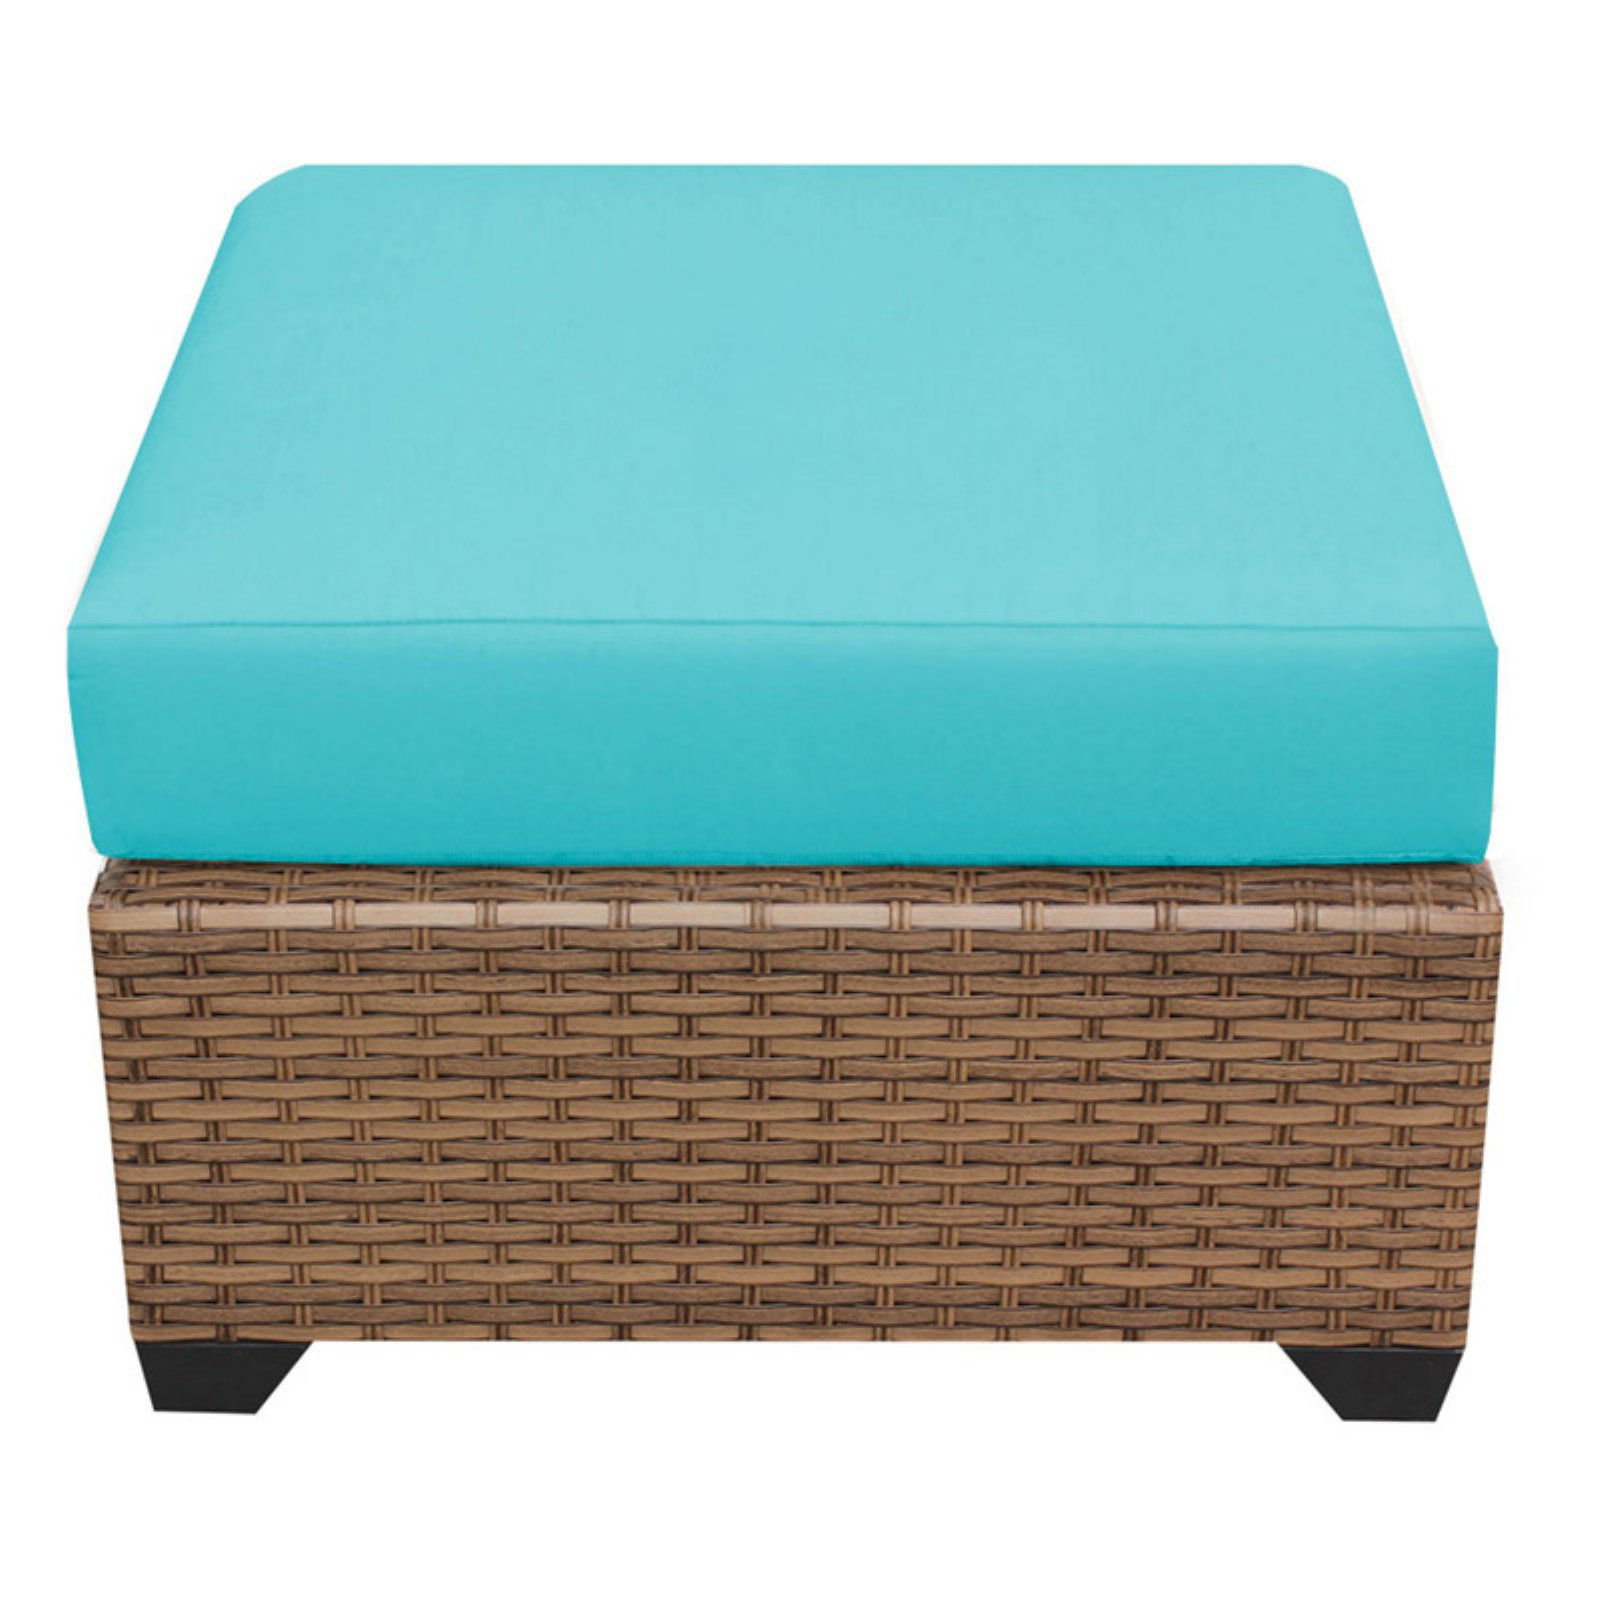 TK Classics Laguna Wicker Outdoor Ottoman - Set of 2 Cushion Covers